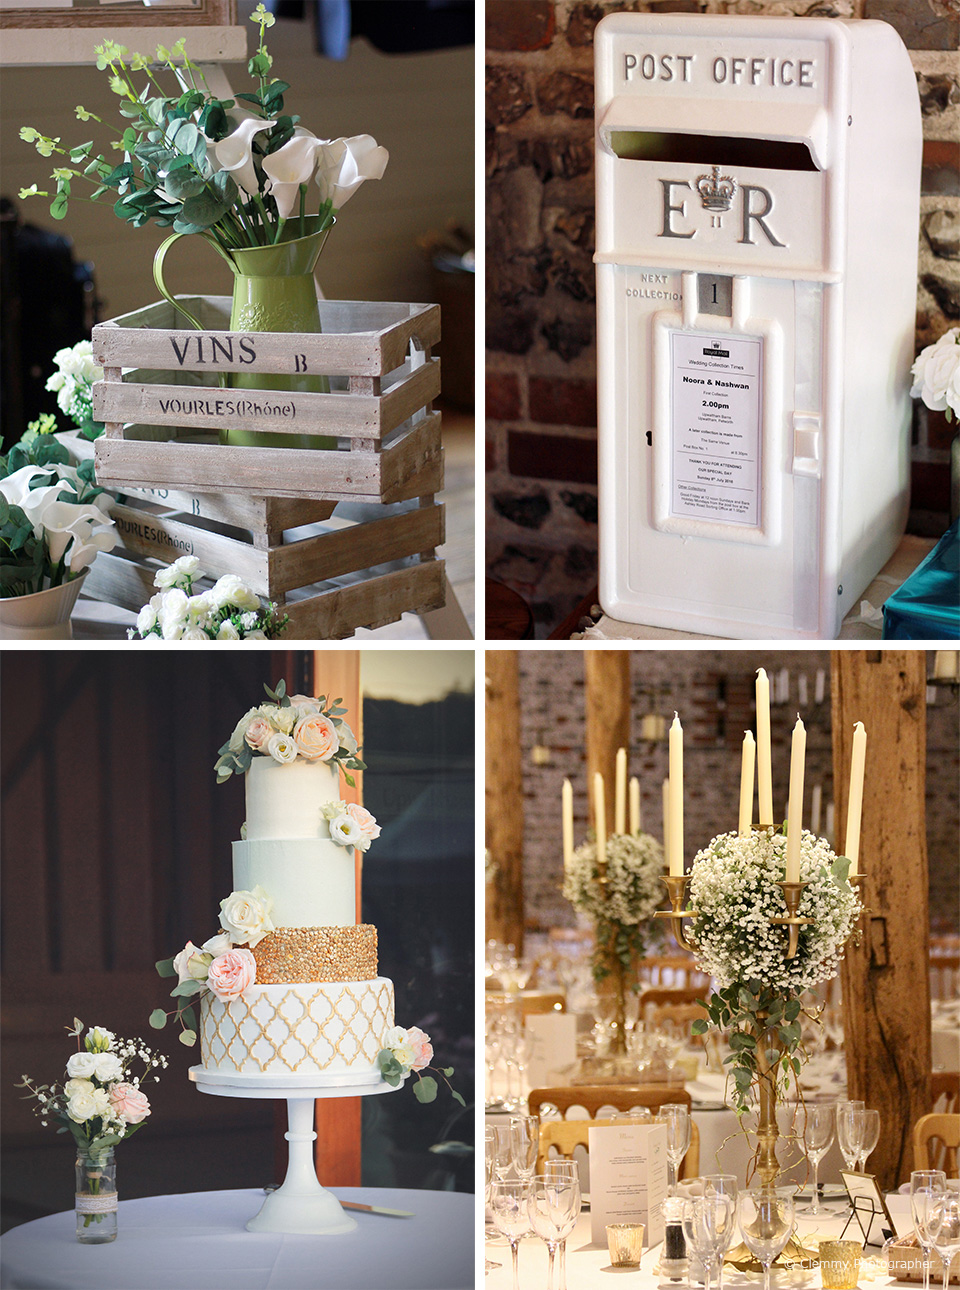 The couple chose a gold an ivory theme for their wedding at Upwaltham Barns